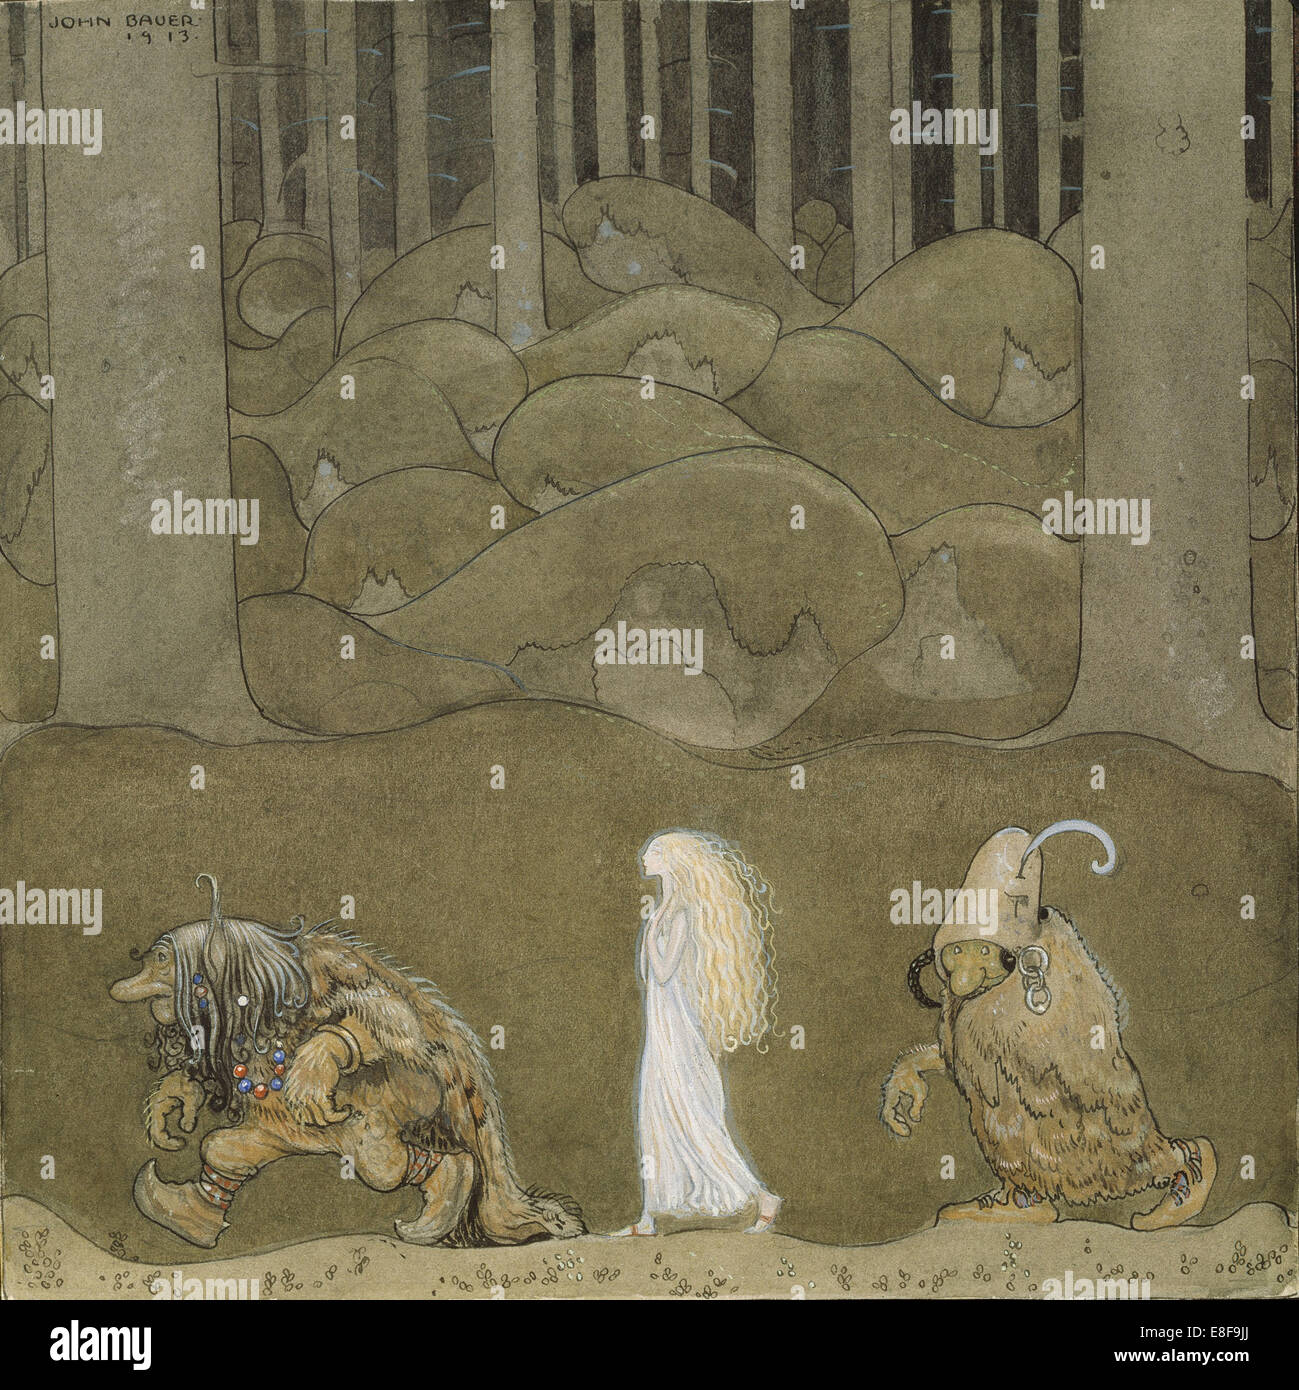 The Princess and the Trolls. Artist: Bauer, John (1882-1918) - Stock Image